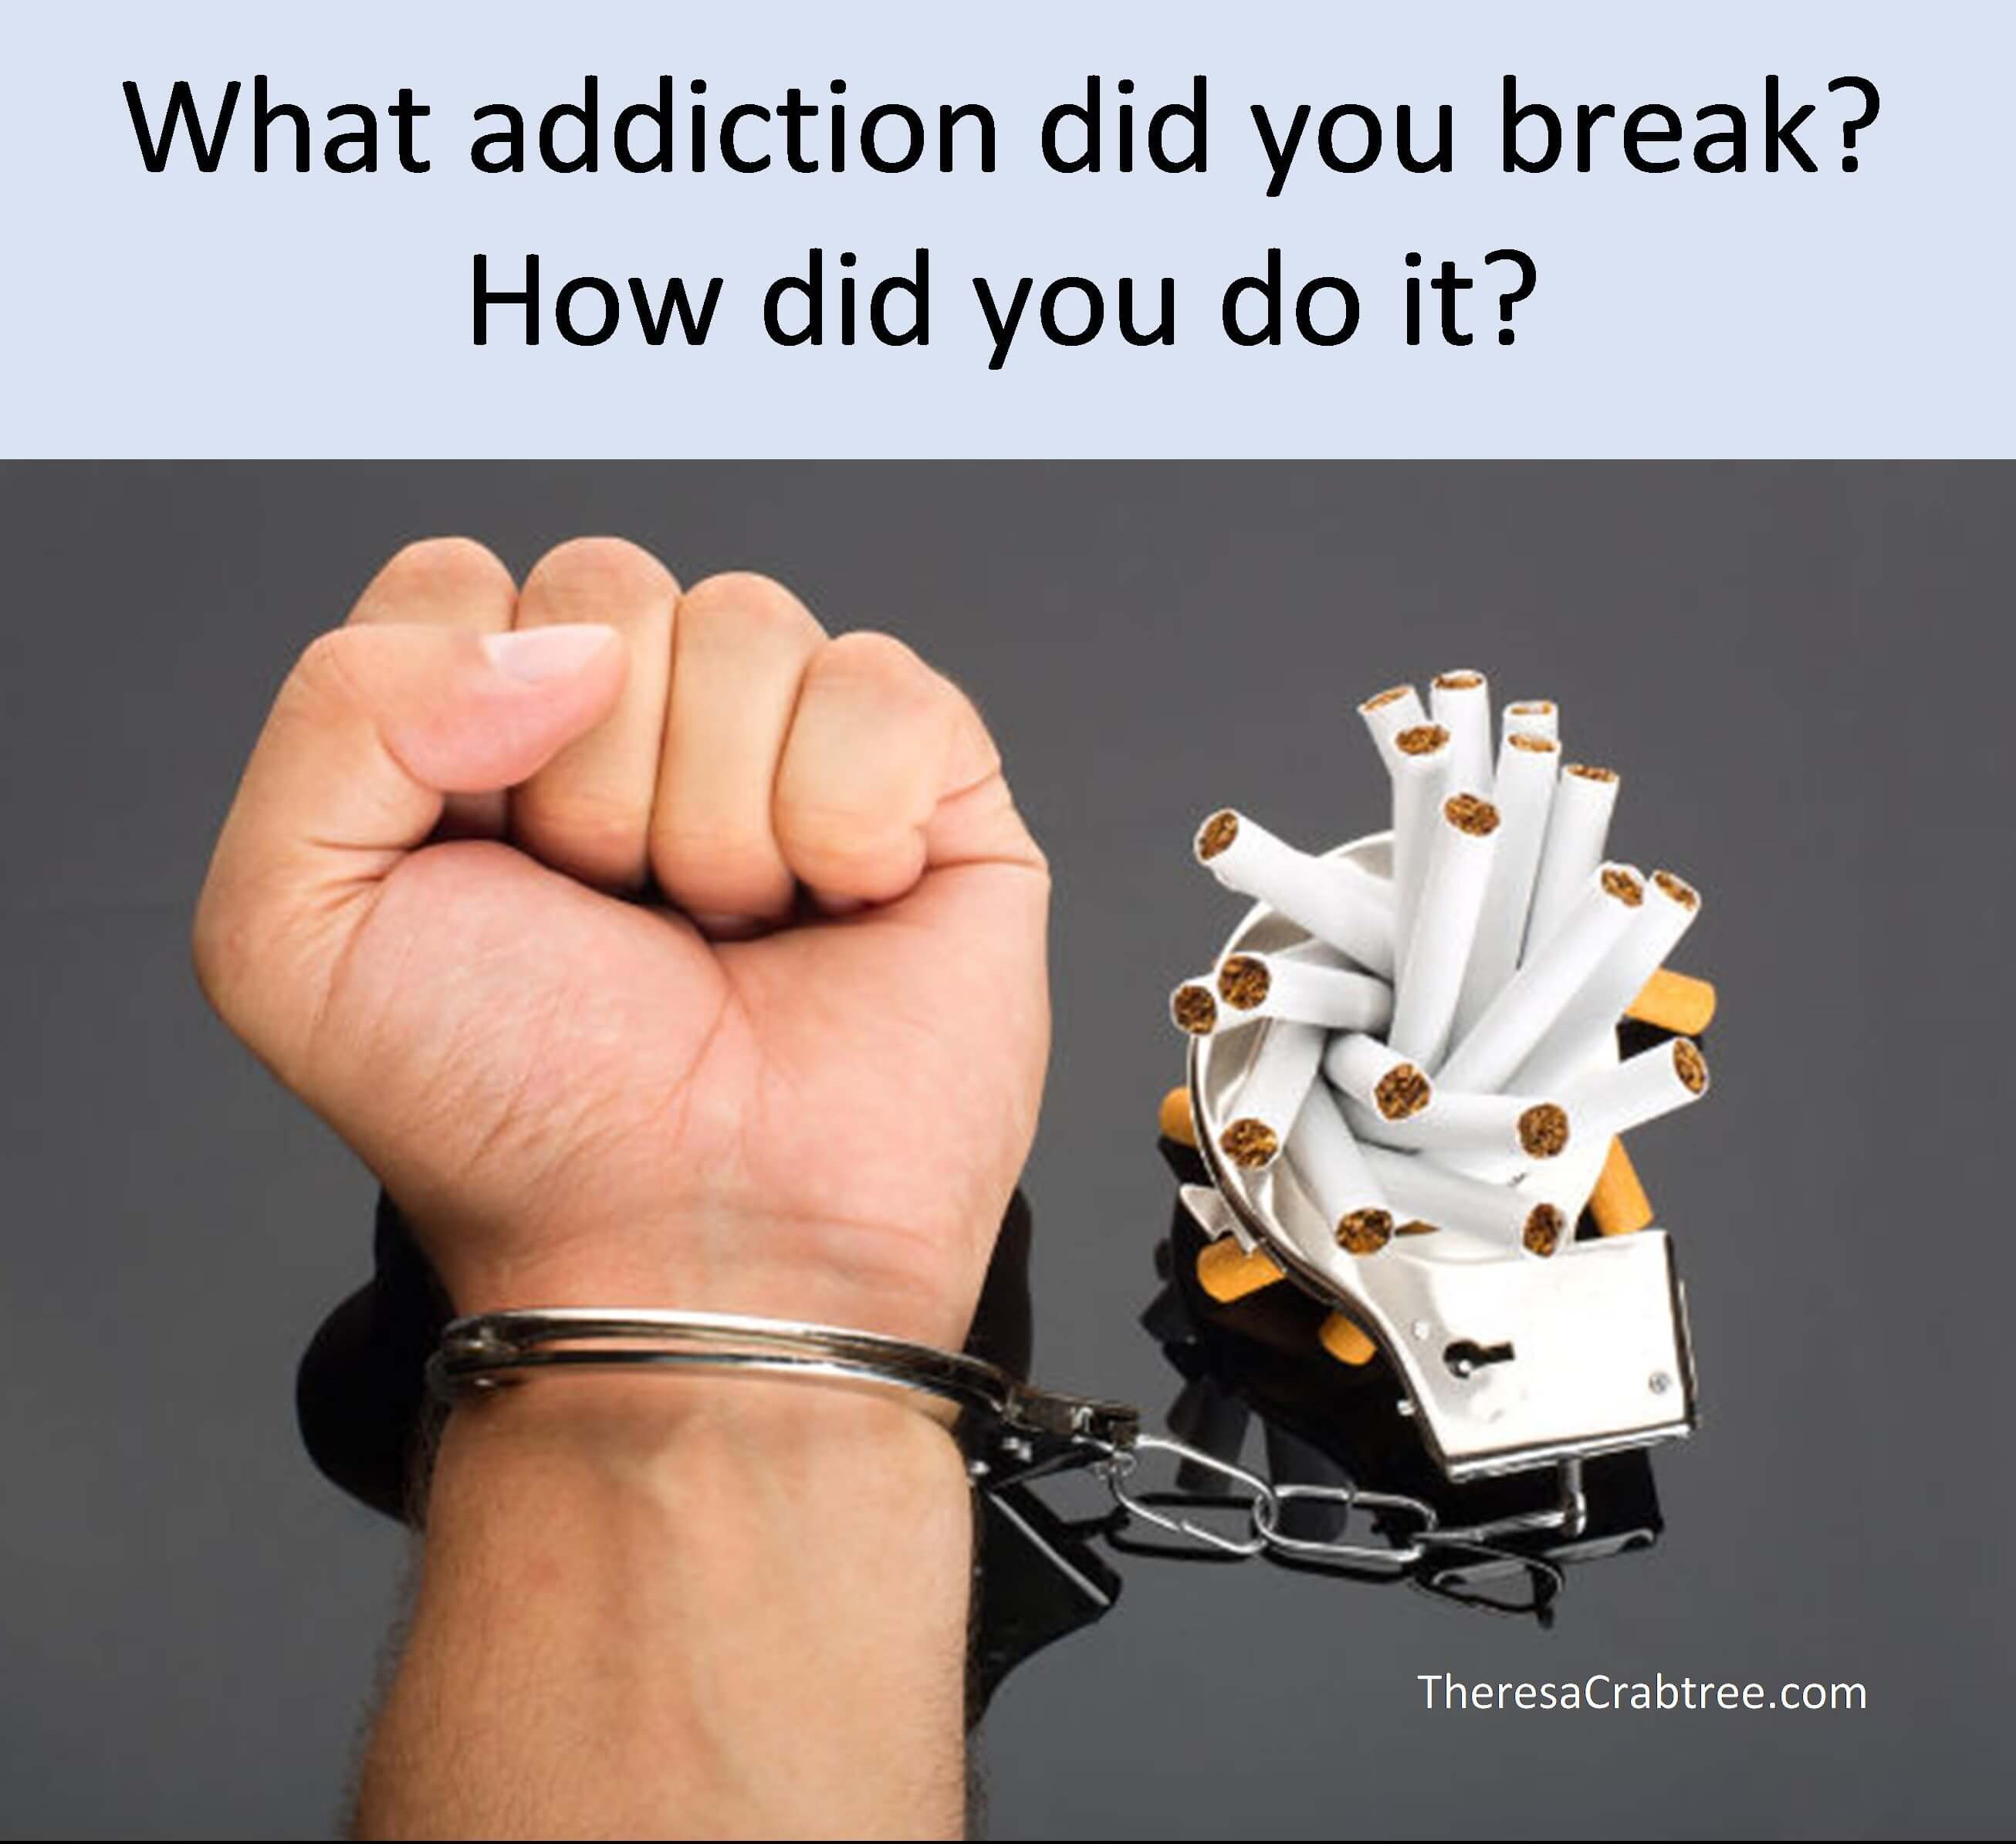 What addiction did you break?